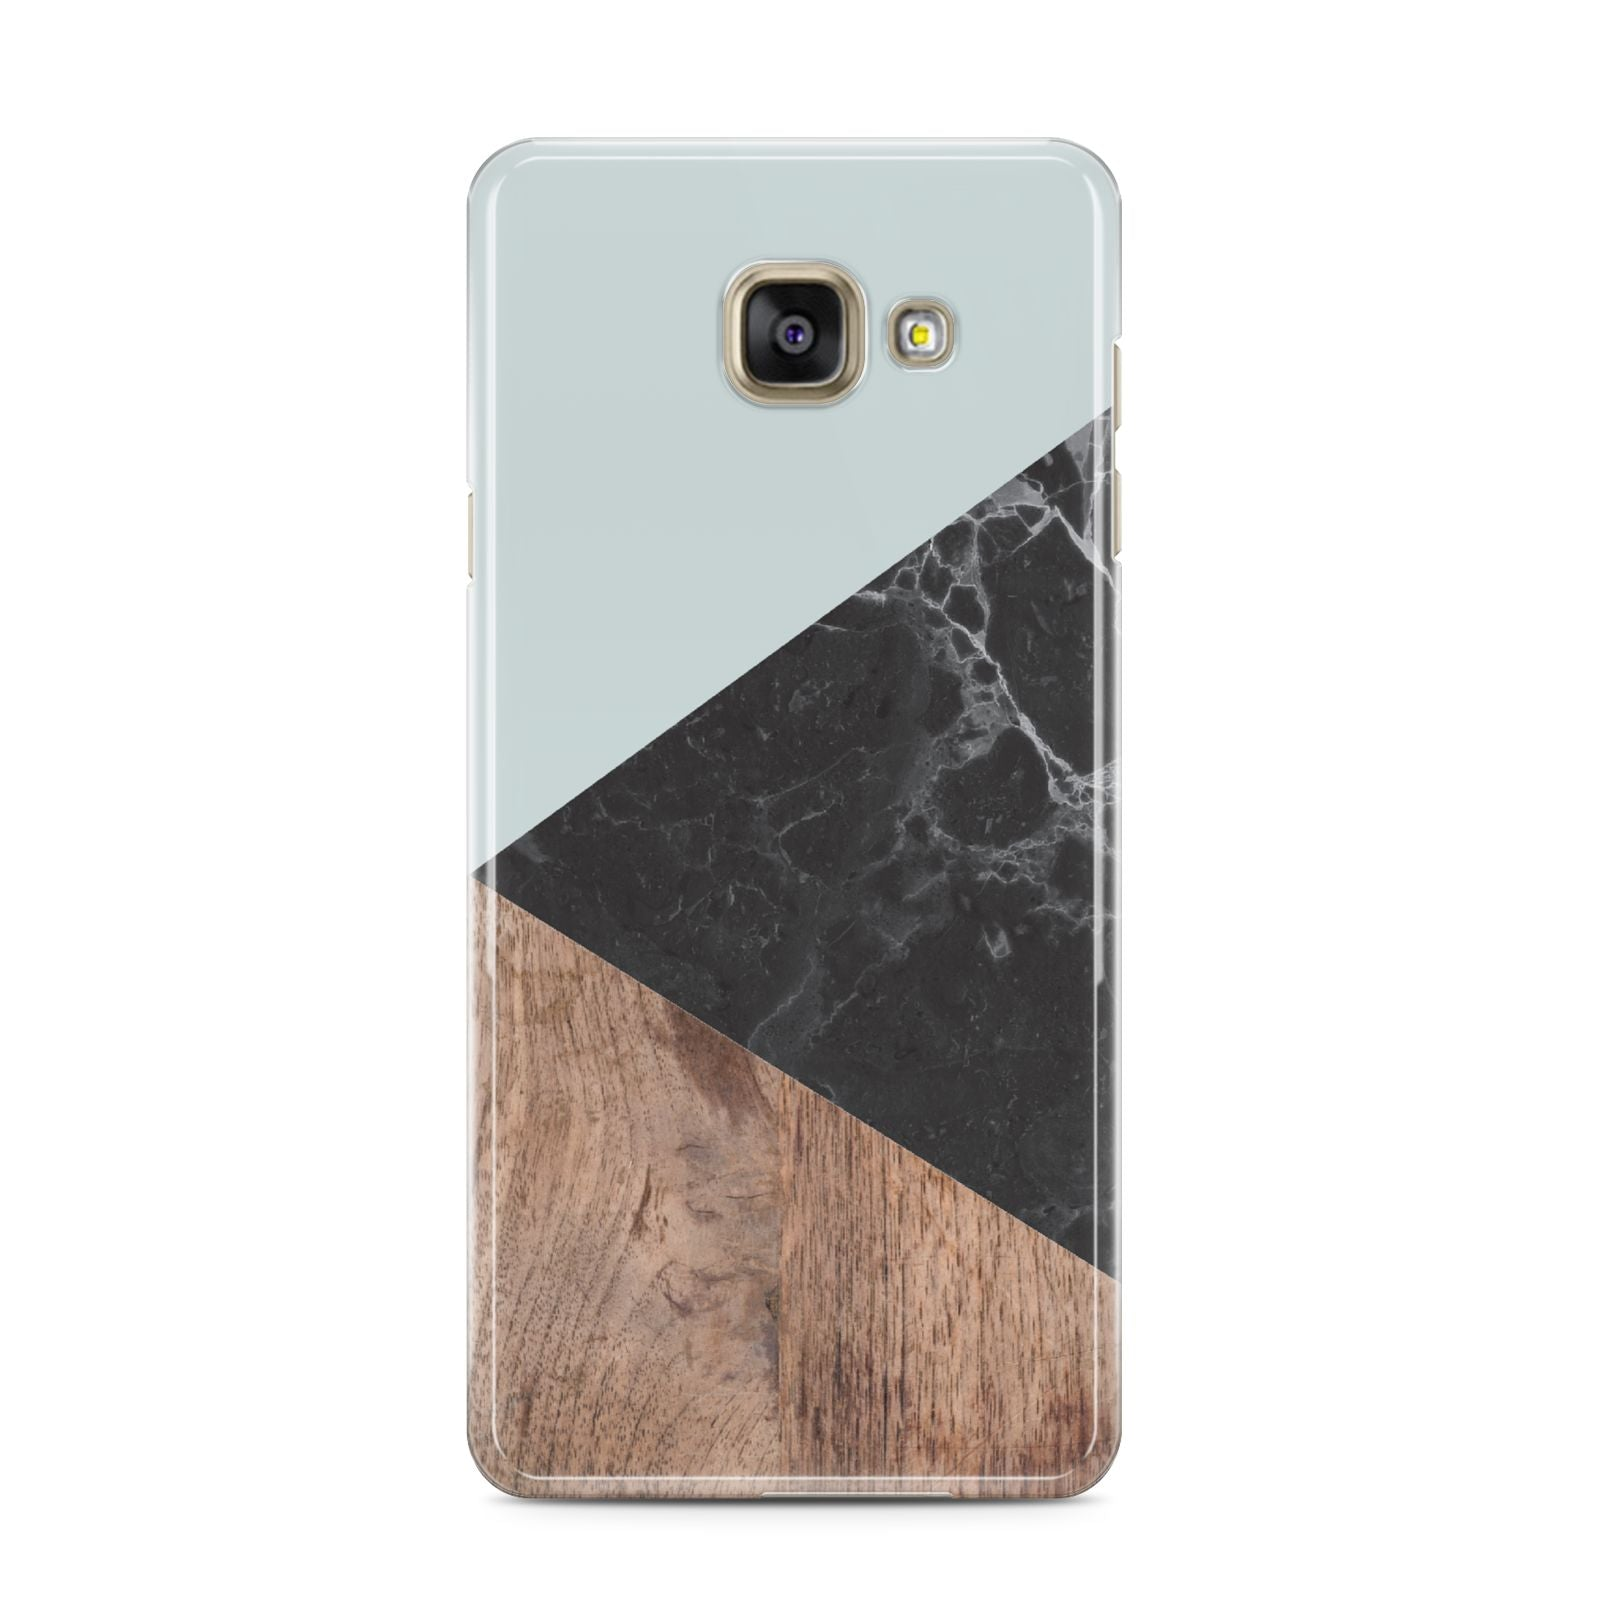 Marble Wood Geometric 2 Samsung Galaxy A3 2016 Case on gold phone